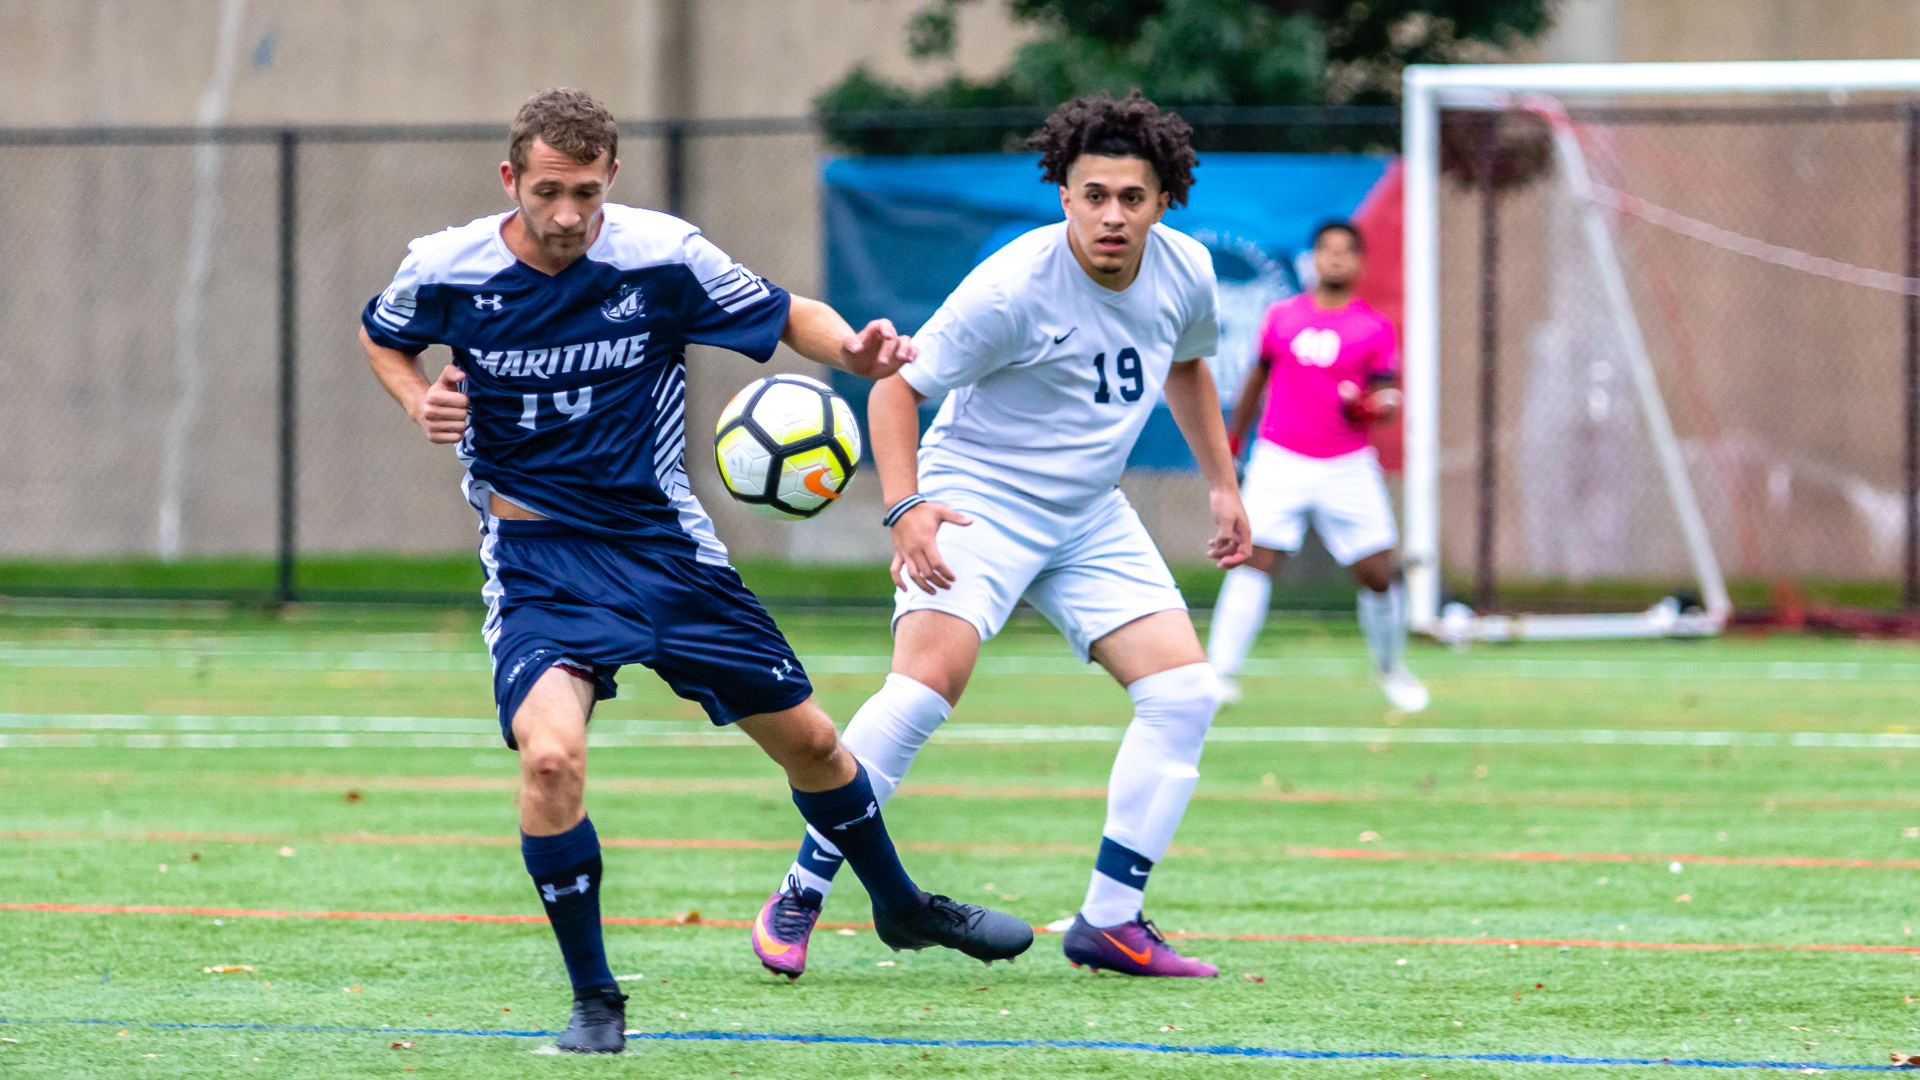 Men's Soccer Clipped by First-Place Maritime, 3-2